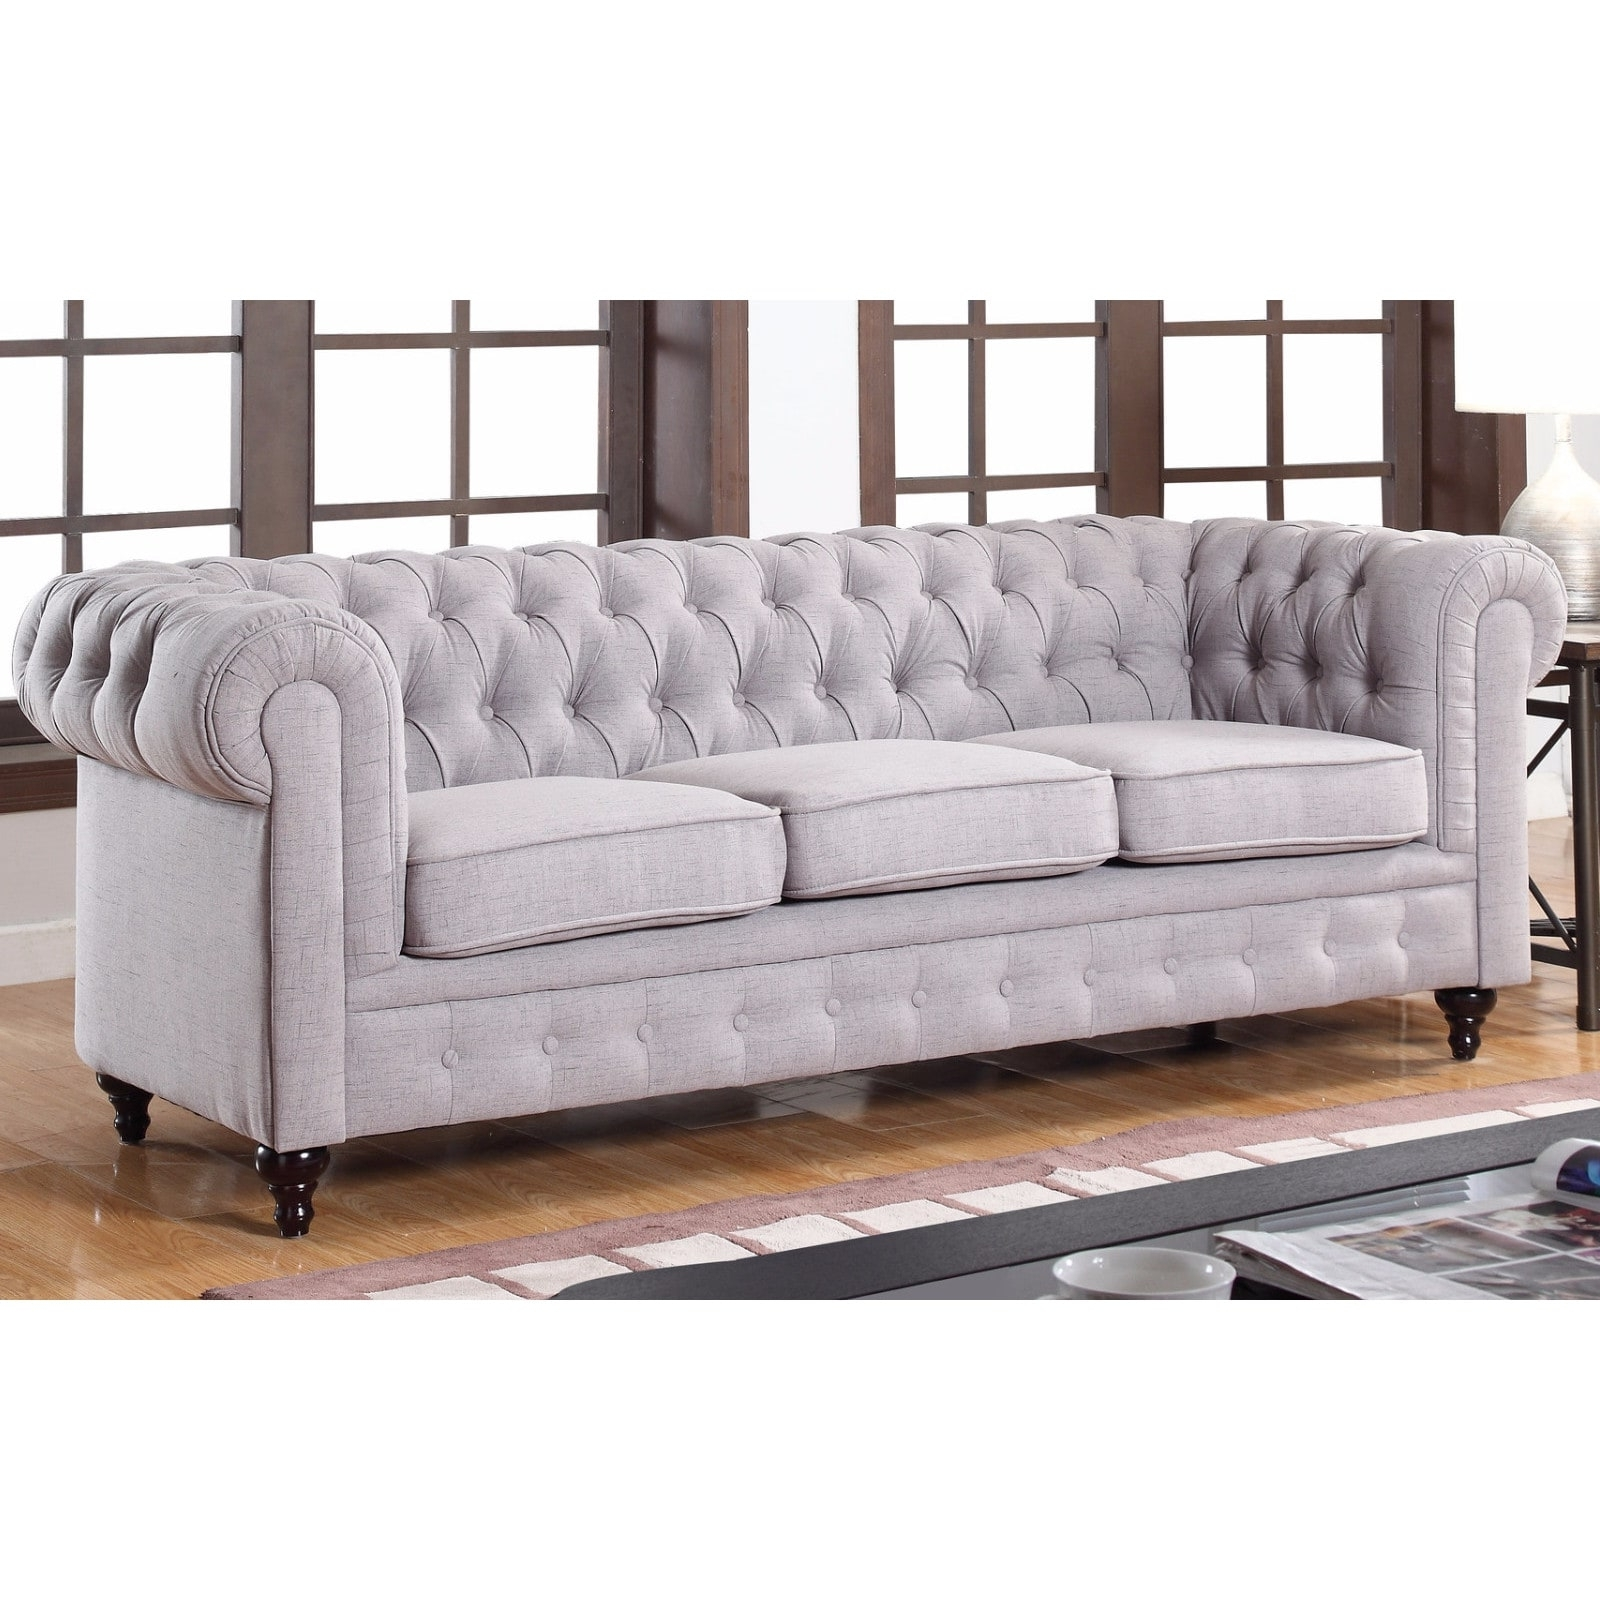 Classic Stone Scroll Arm Tufted Linen Fabric Chesterfield Large Throughout Most Up To Date Tufted Linen Sofas (Gallery 15 of 20)